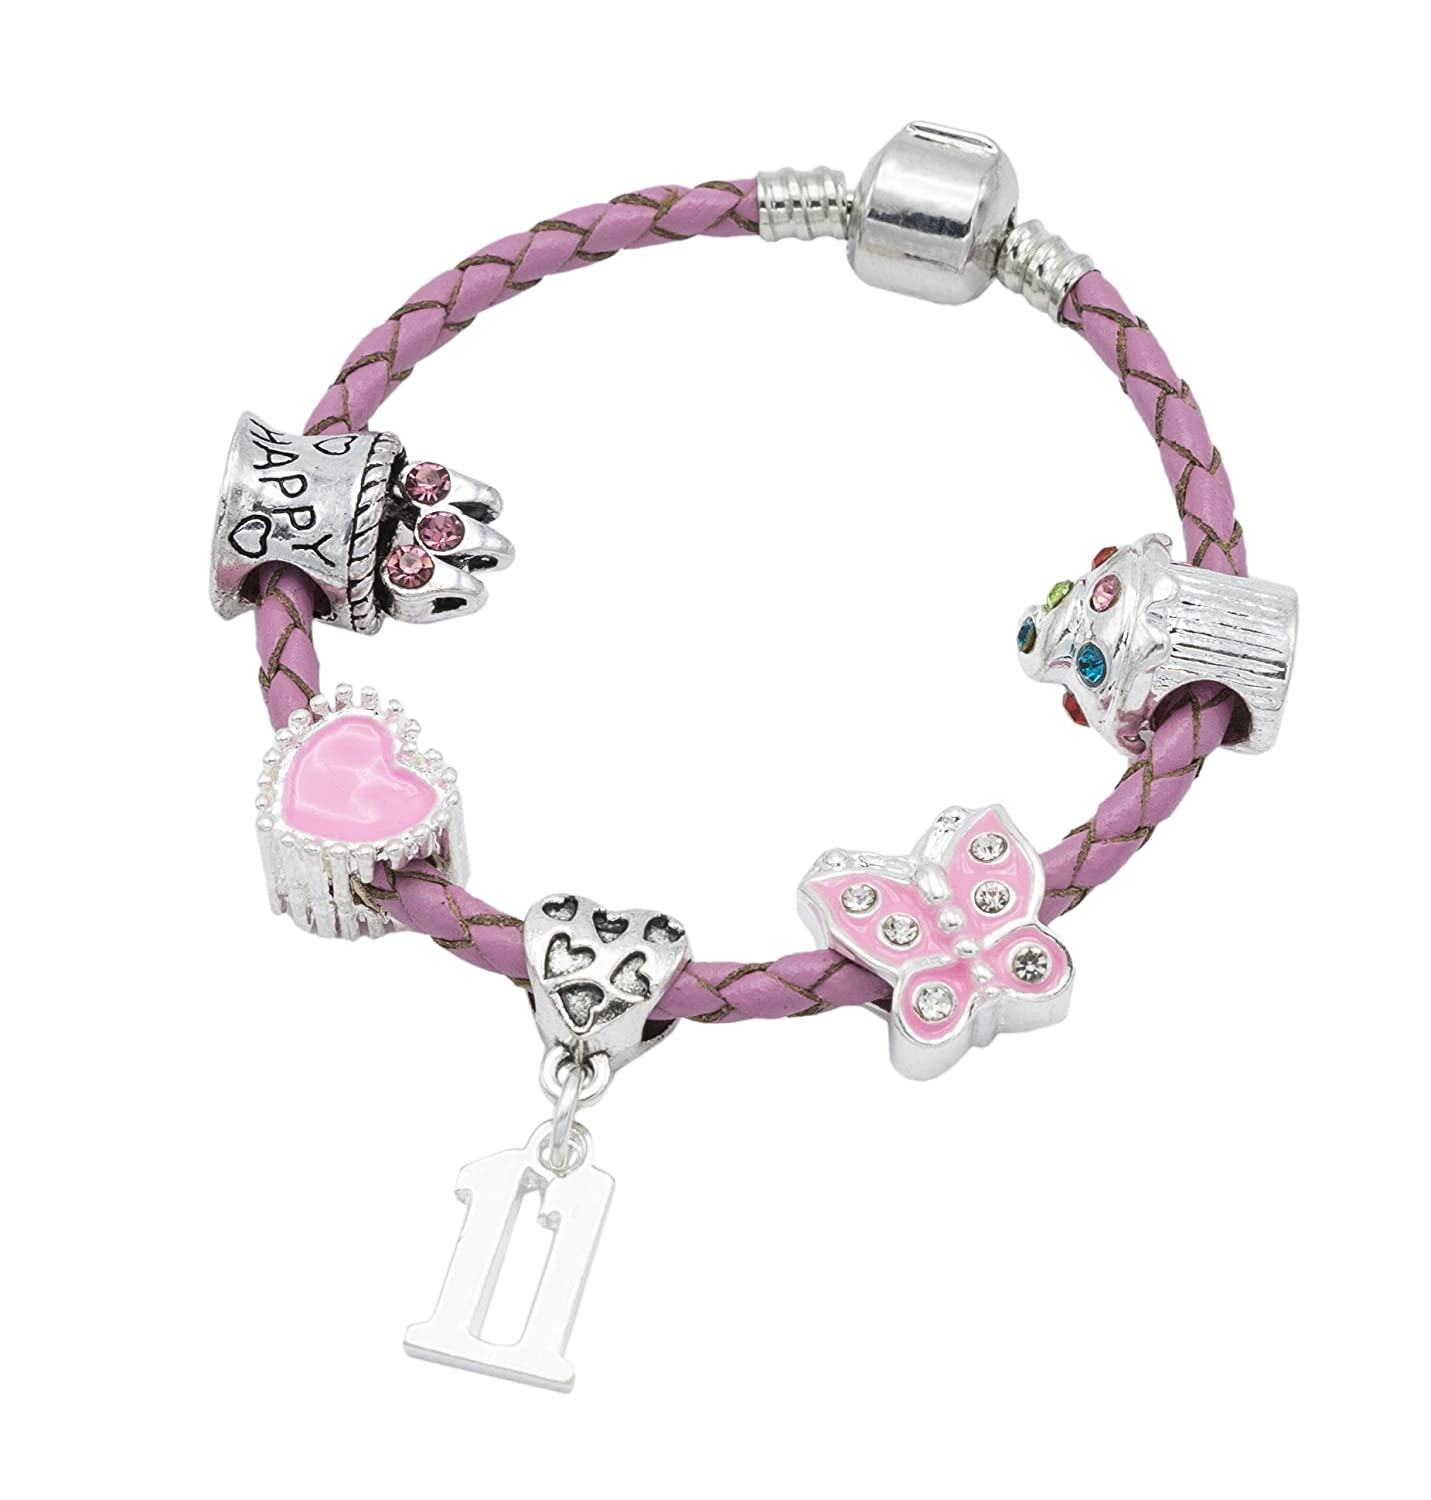 Children's Pink Leather Happy 11th Birthday Charm Bracelet With Lovely Jewellery Hut Gift Pouch - Girl's & Children's Birthday Gift Jewellery BRKID11